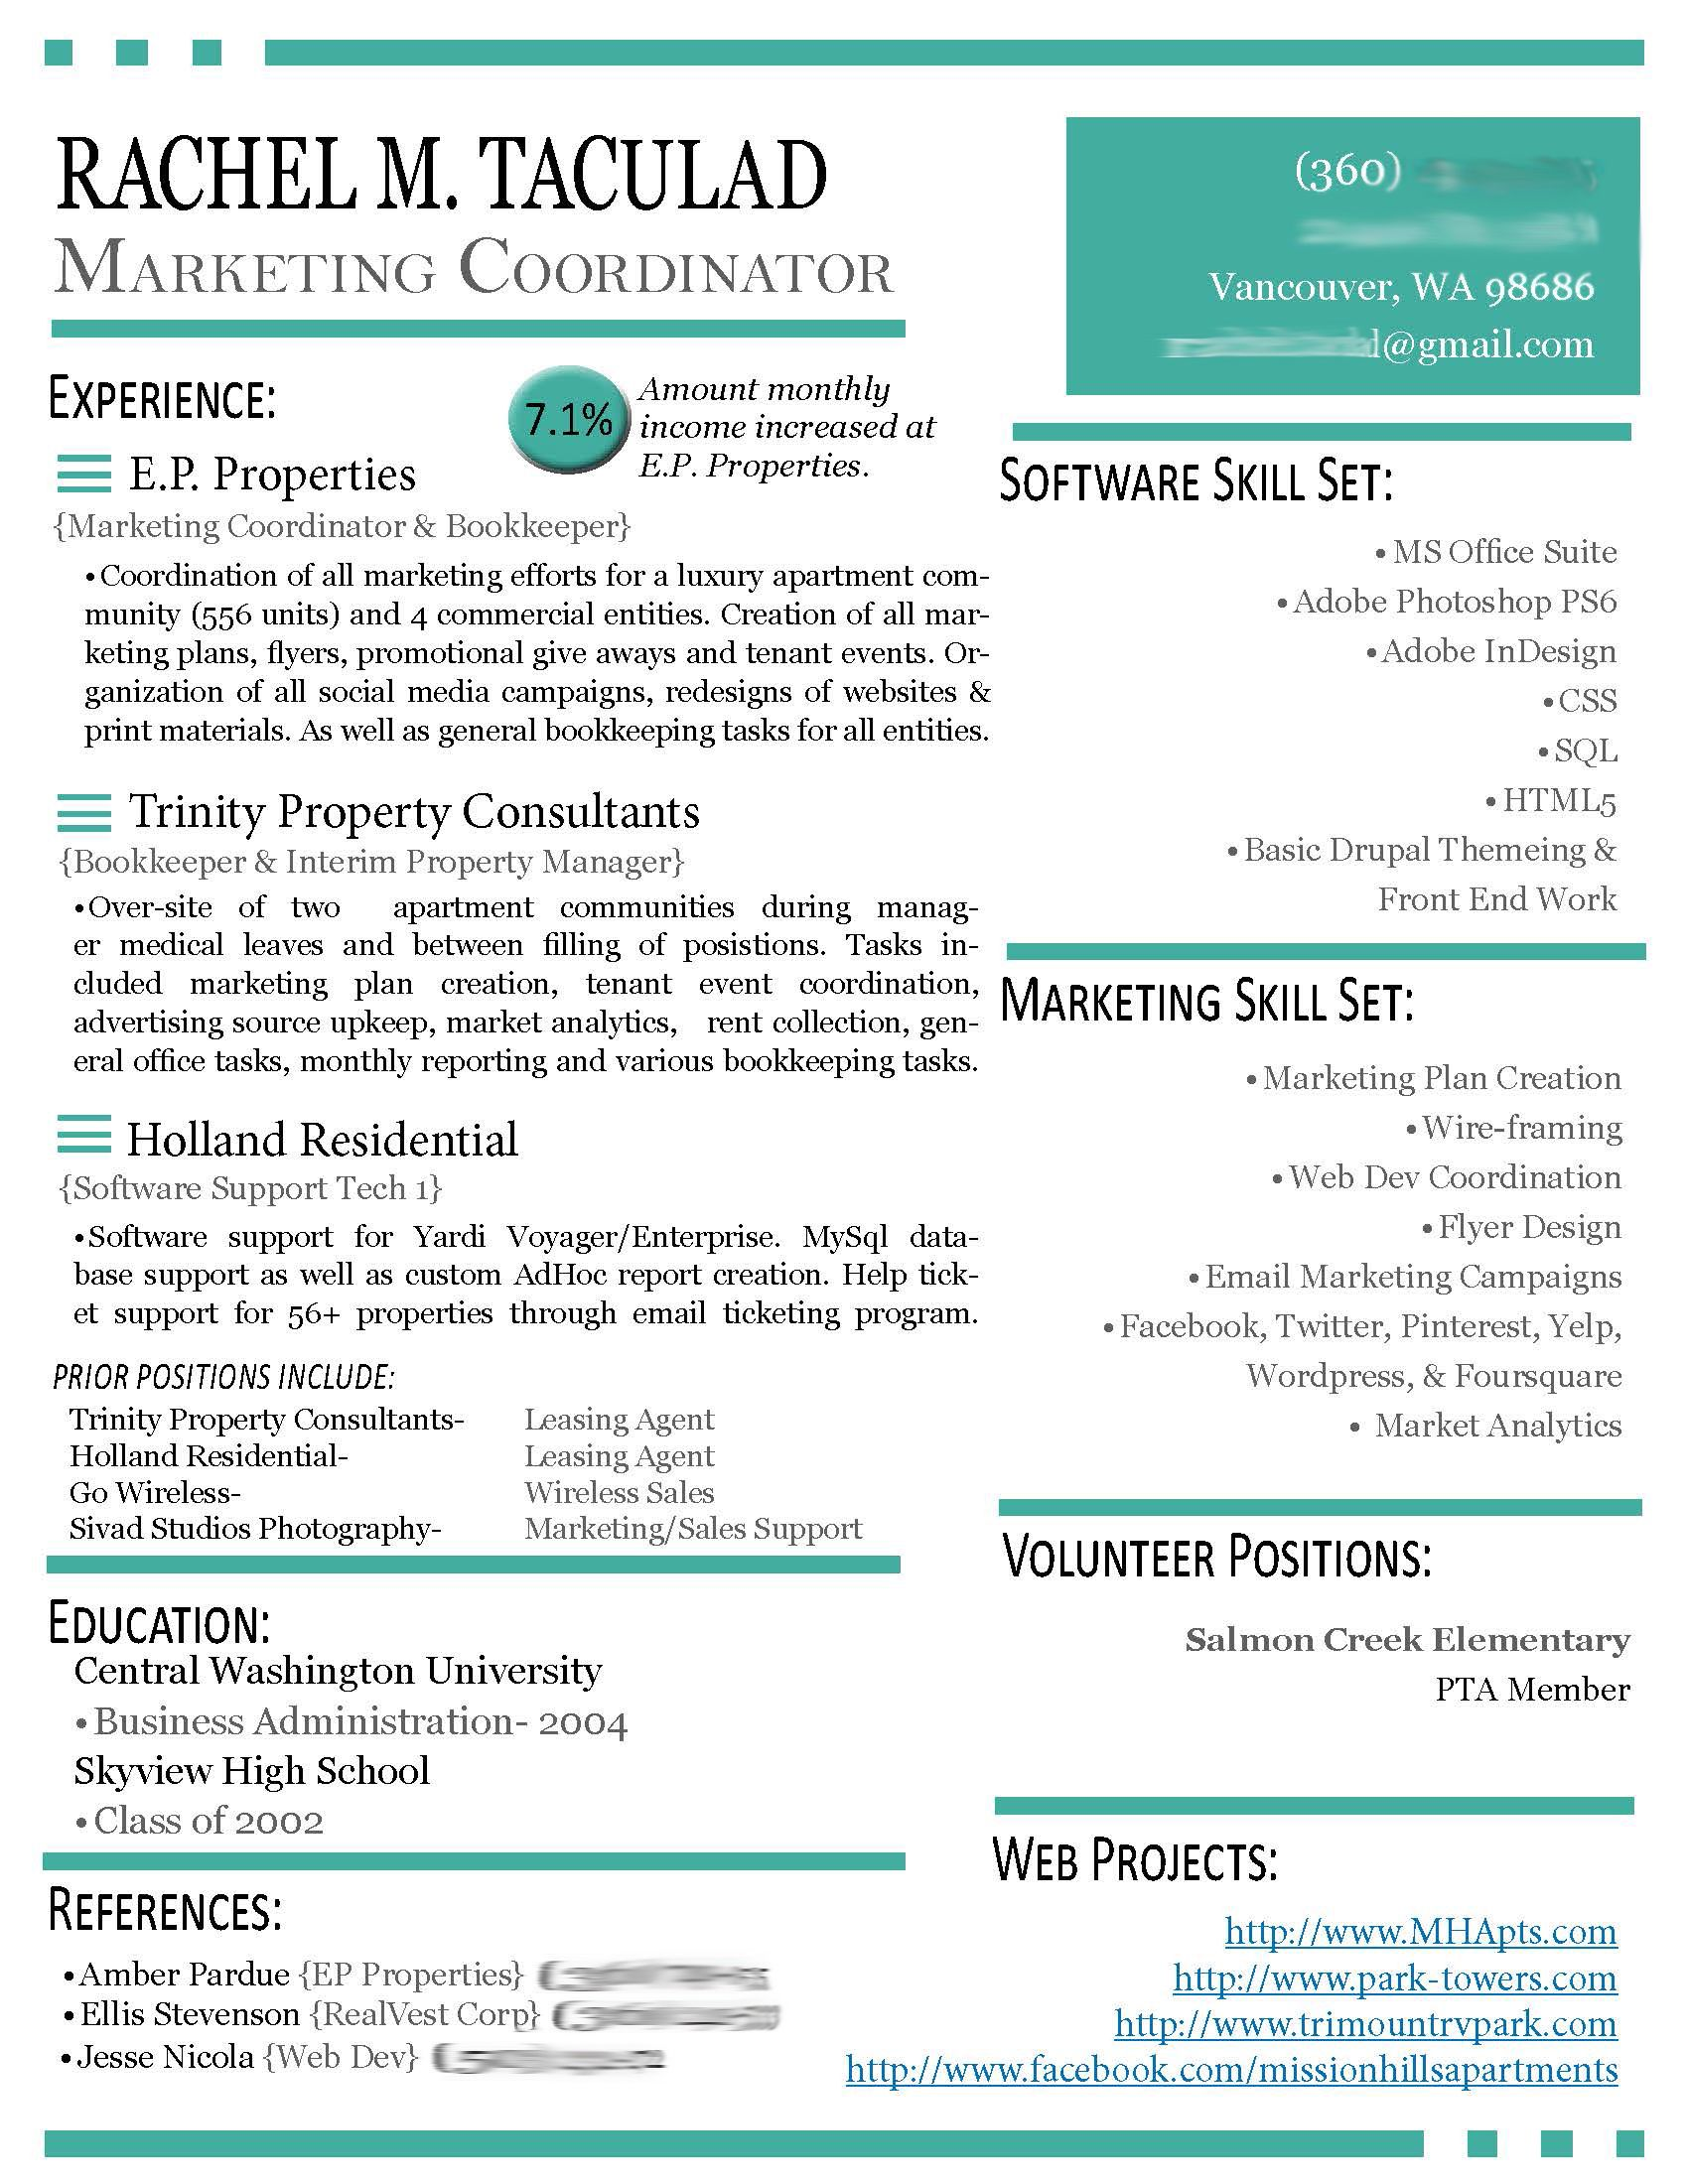 Opposenewapstandardsus  Wonderful  Images About Work Stuff On Pinterest  Resume Professional  With Great  Images About Work Stuff On Pinterest  Resume Professional Resume Template And Resume Templates With Appealing Best Free Resume Also Artist Resume Sample In Addition What All Goes On A Resume And Resume Descriptions As Well As Outline Of Resume Additionally Free Resume Template Download Pdf From Pinterestcom With Opposenewapstandardsus  Great  Images About Work Stuff On Pinterest  Resume Professional  With Appealing  Images About Work Stuff On Pinterest  Resume Professional Resume Template And Resume Templates And Wonderful Best Free Resume Also Artist Resume Sample In Addition What All Goes On A Resume From Pinterestcom